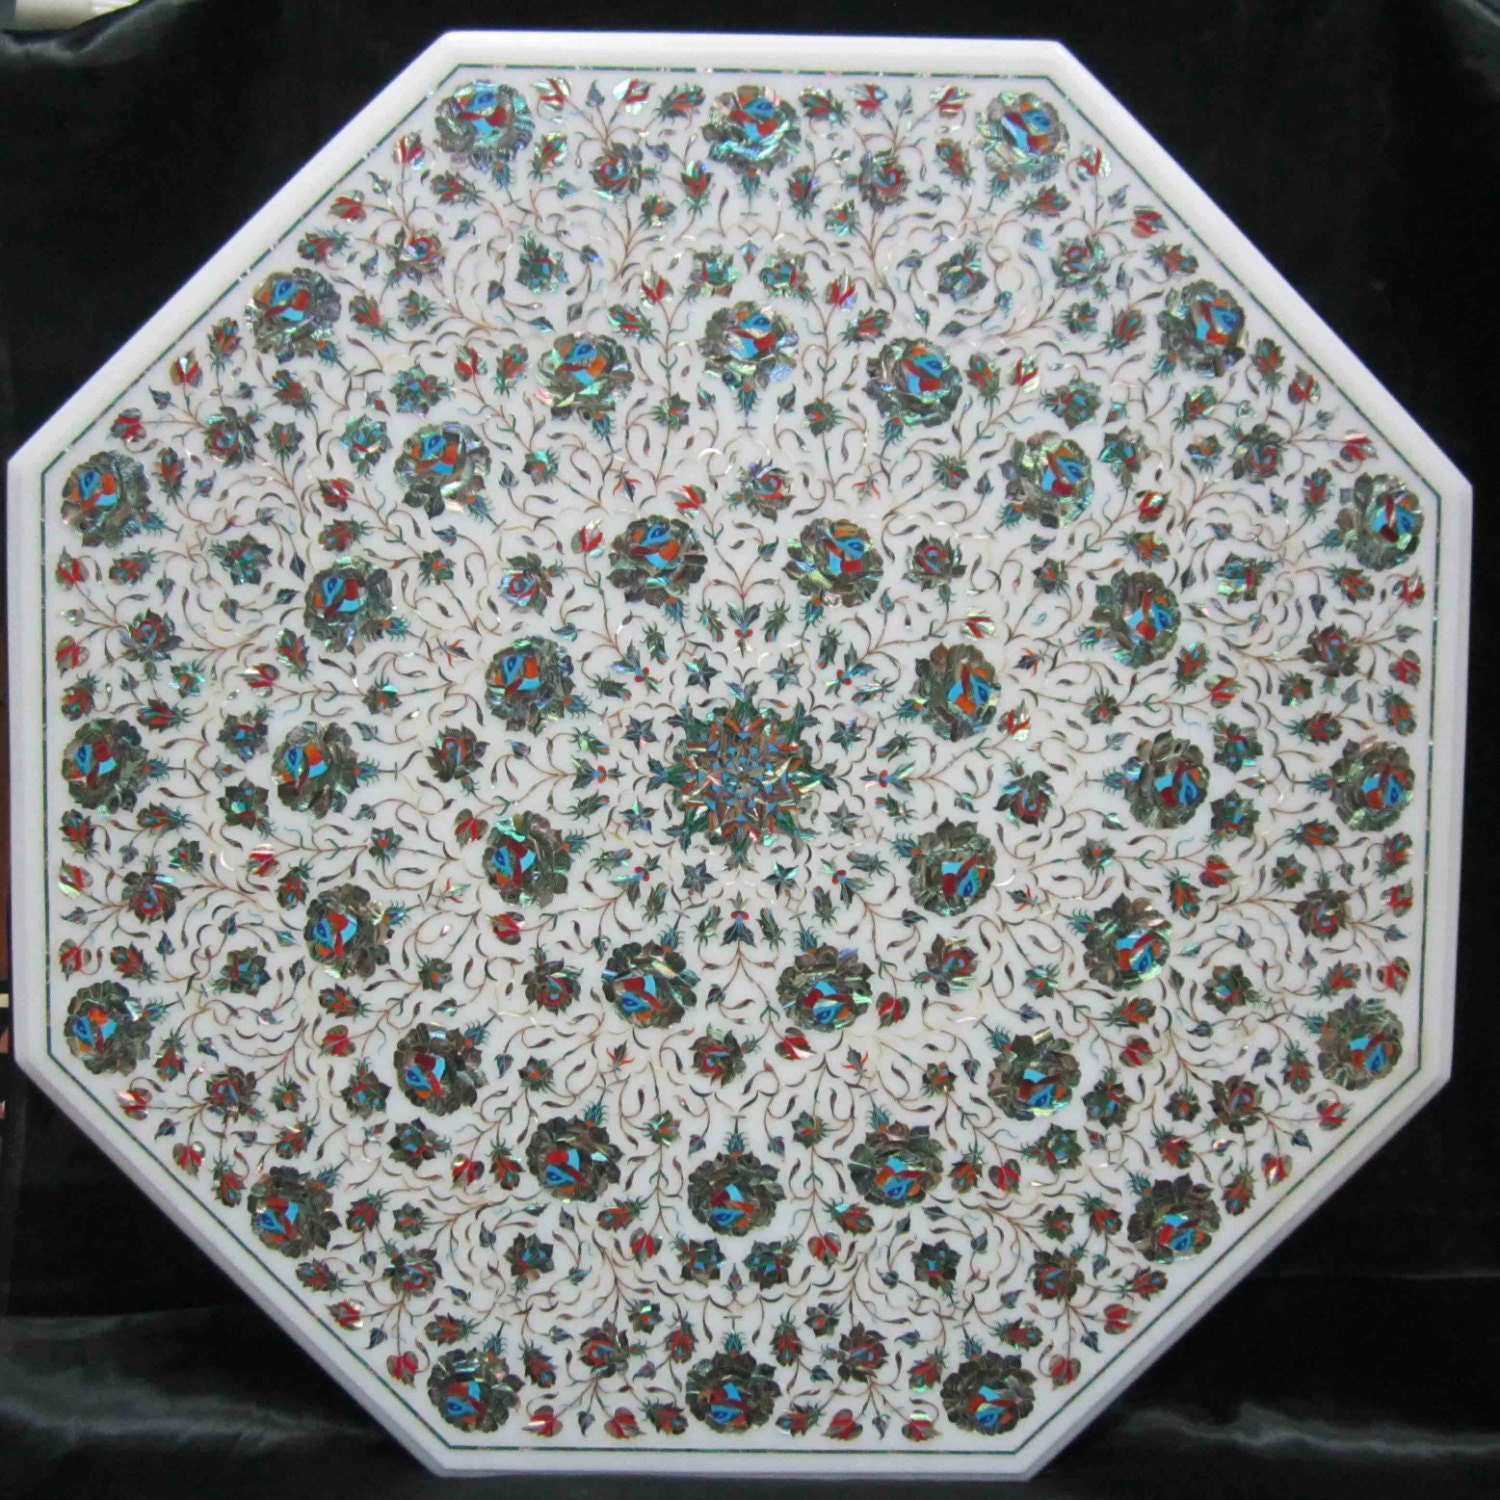 Marble Inlay Table Tops : Marble inlay coffee table top stone inlaid tables with